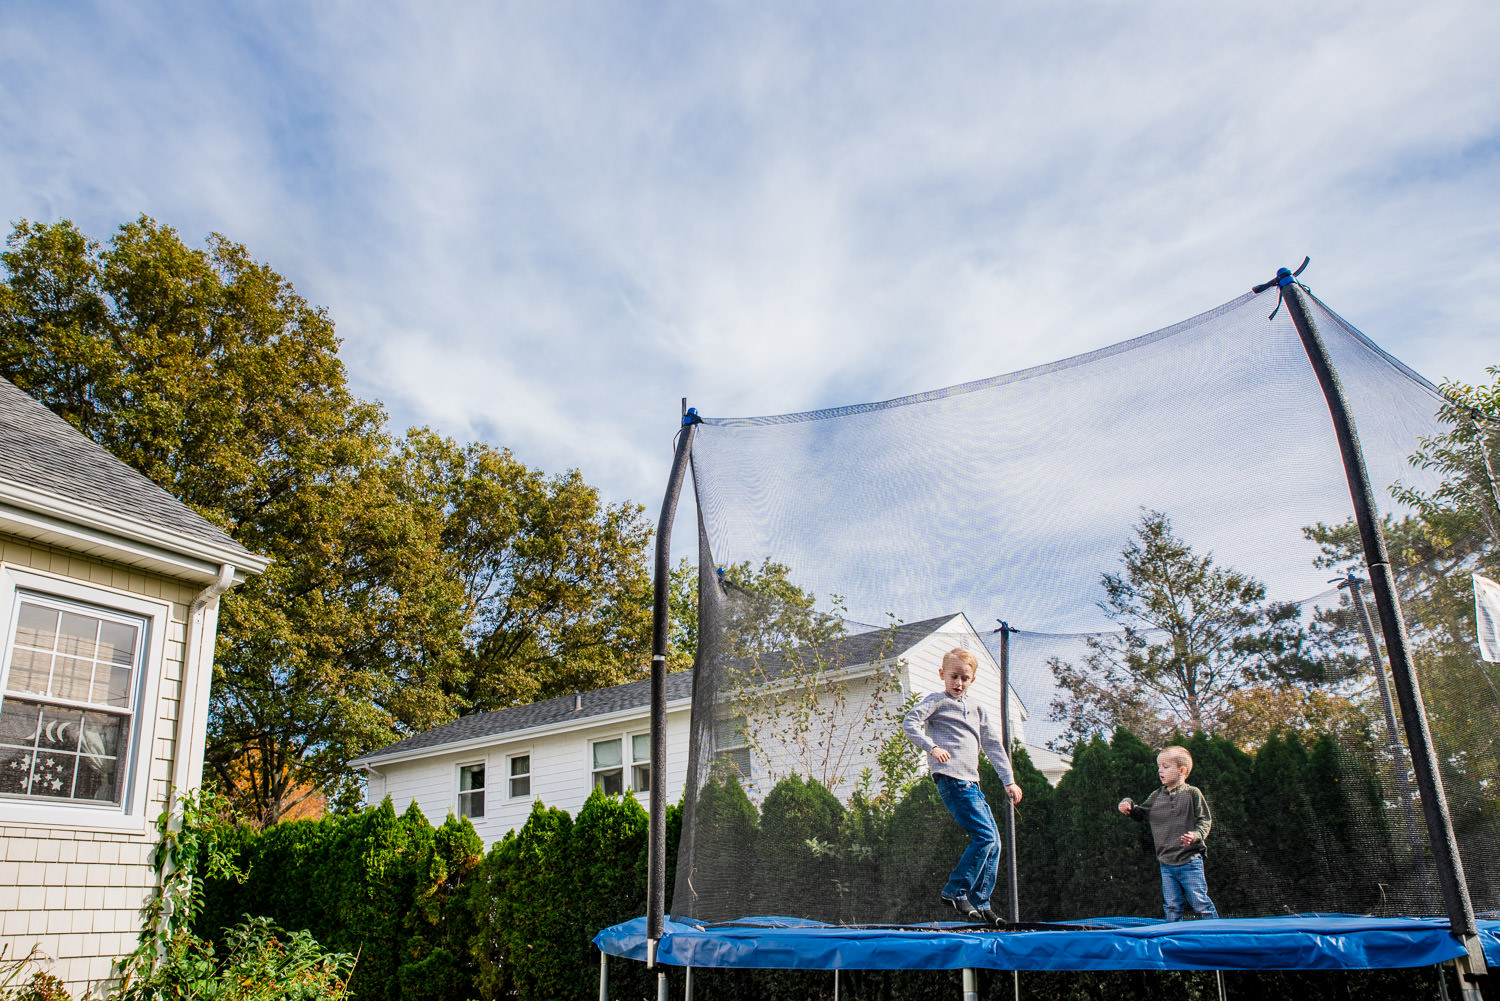 Two boys jump on a trampoline in their backyard.